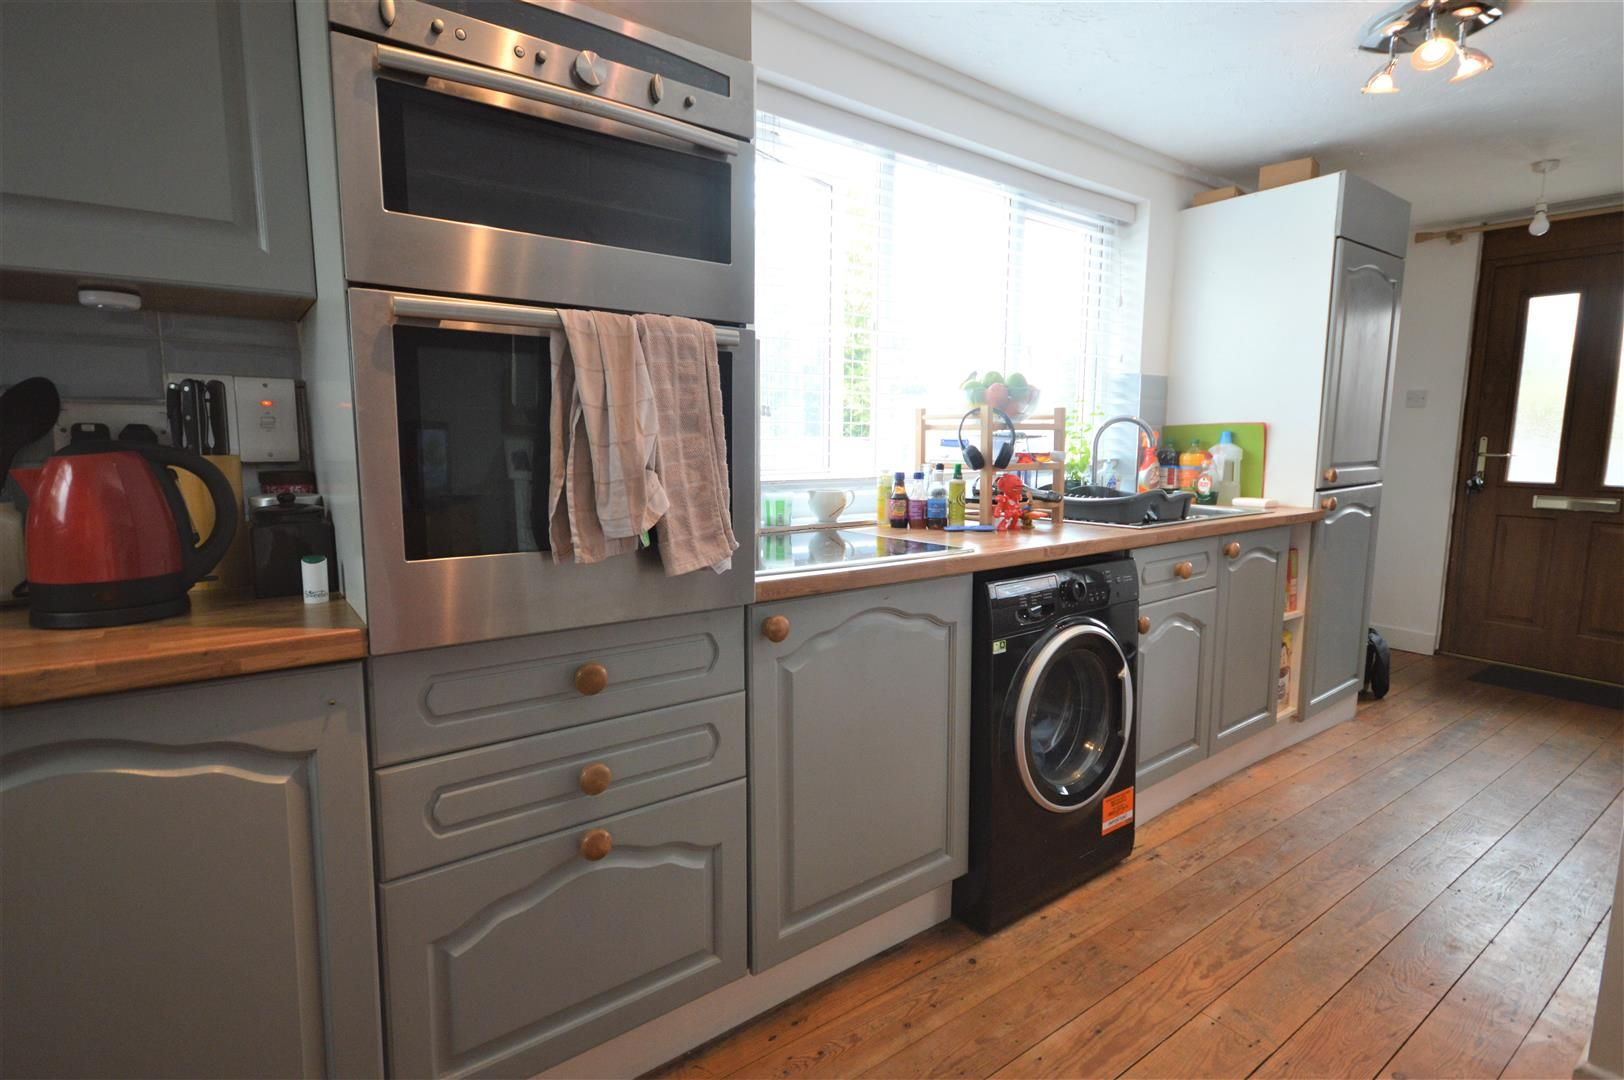 1 bed semi-detached for sale in Leominster  - Property Image 5